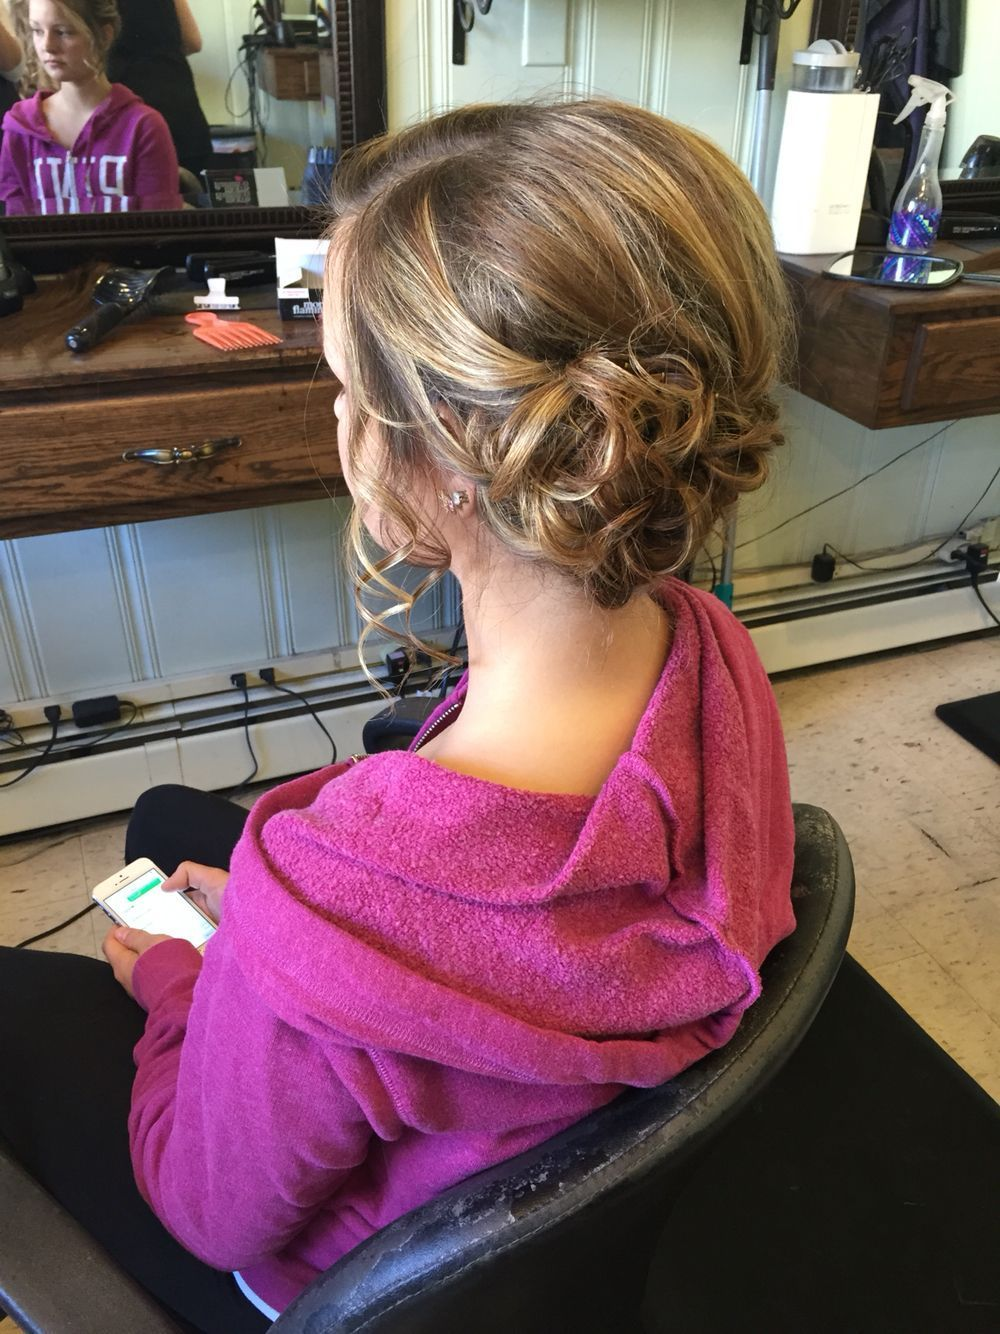 Updo, curled low side bun #lowsidebuns Updo, curled low side bun #lowsidebuns Updo, curled low side bun #lowsidebuns Updo, curled low side bun #lowsidebuns